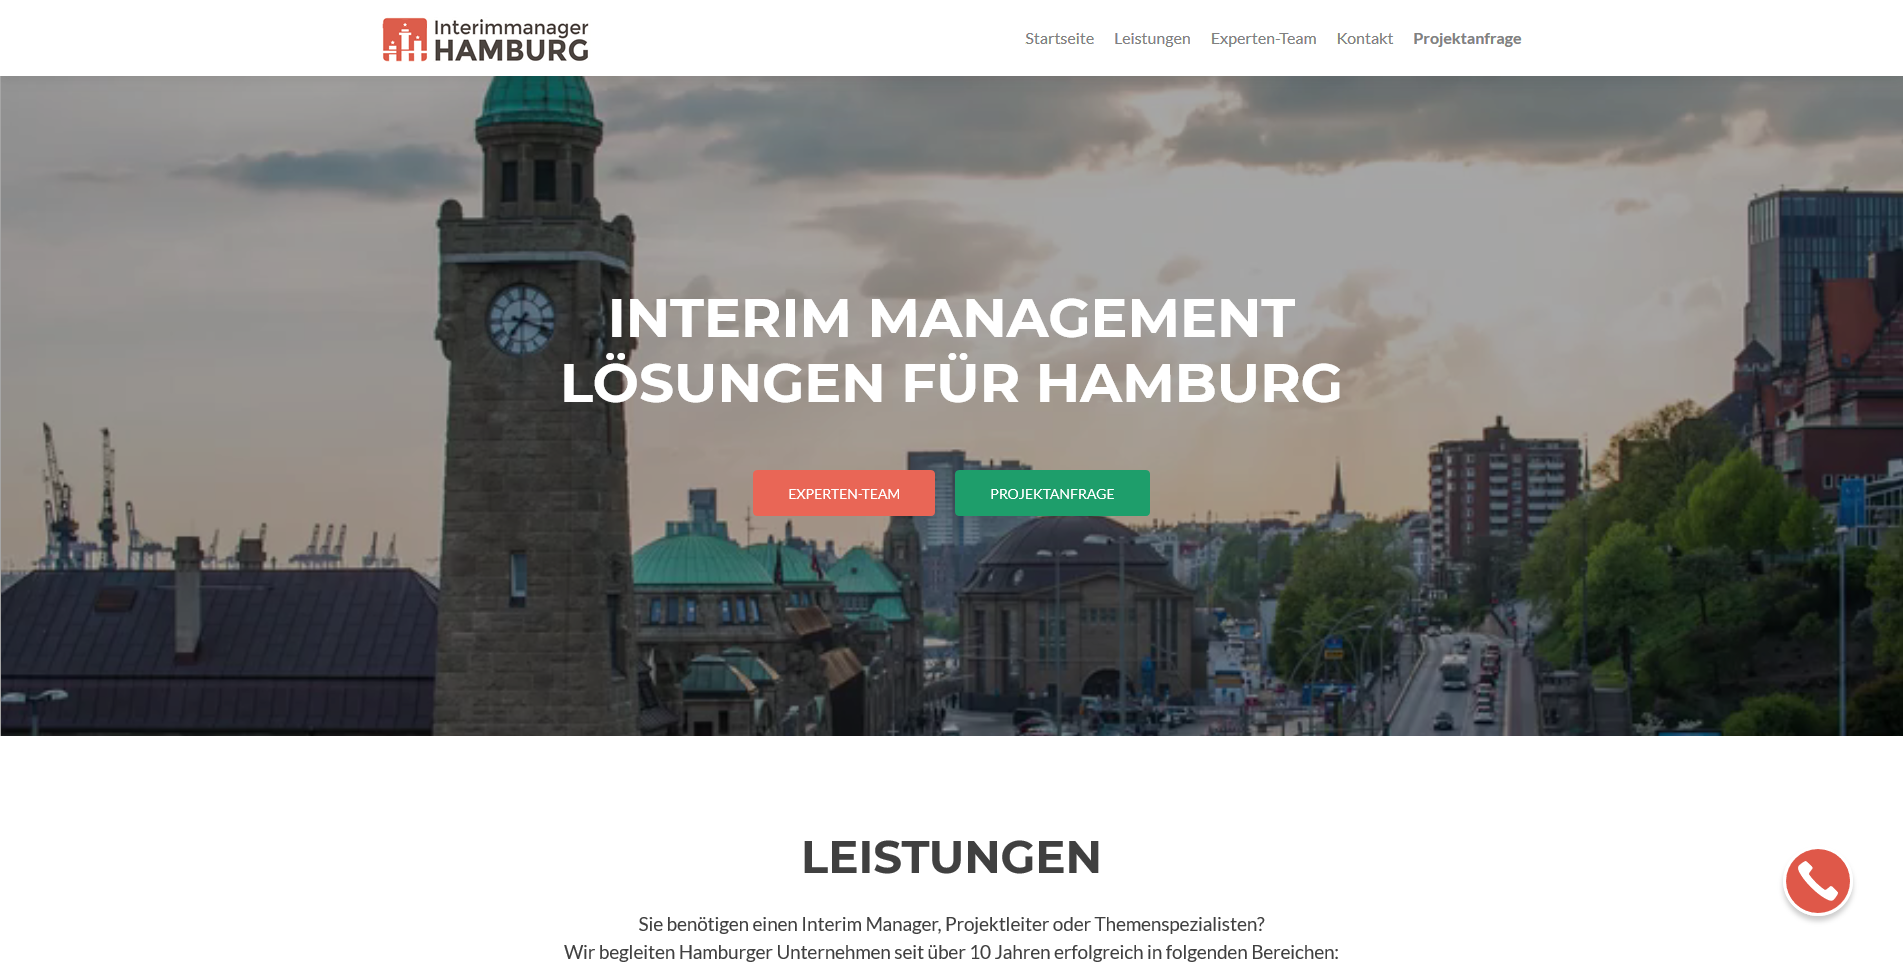 Interimmanager Hamburg